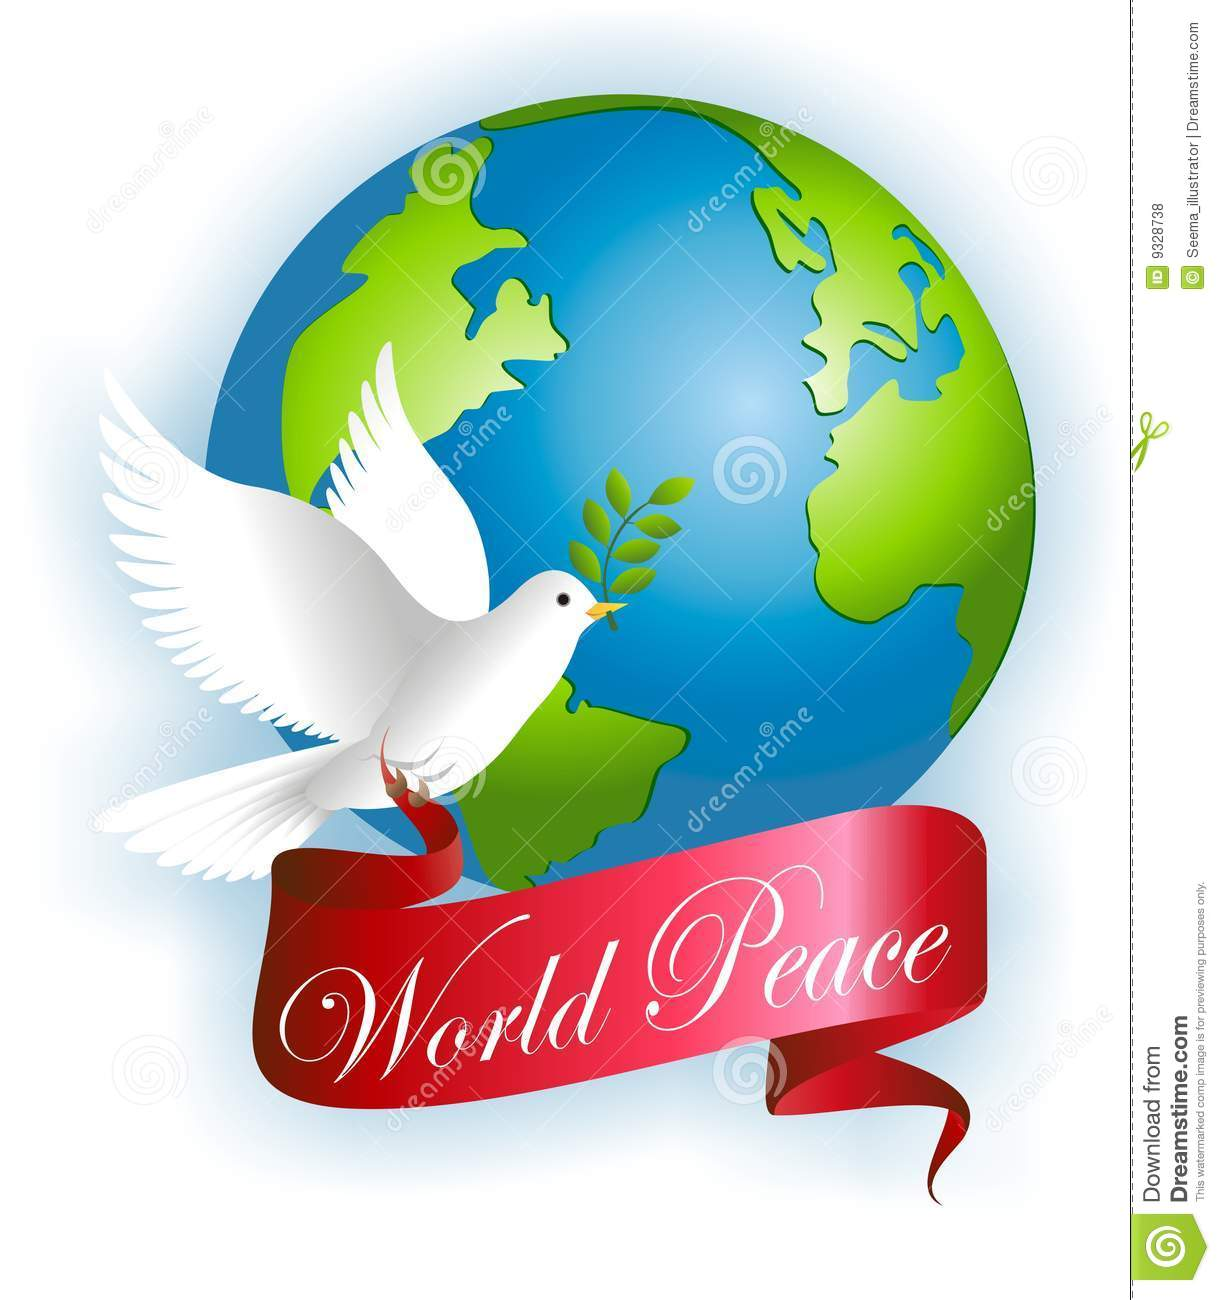 World Peace Essay: Do We All Really Care about Our Lives?